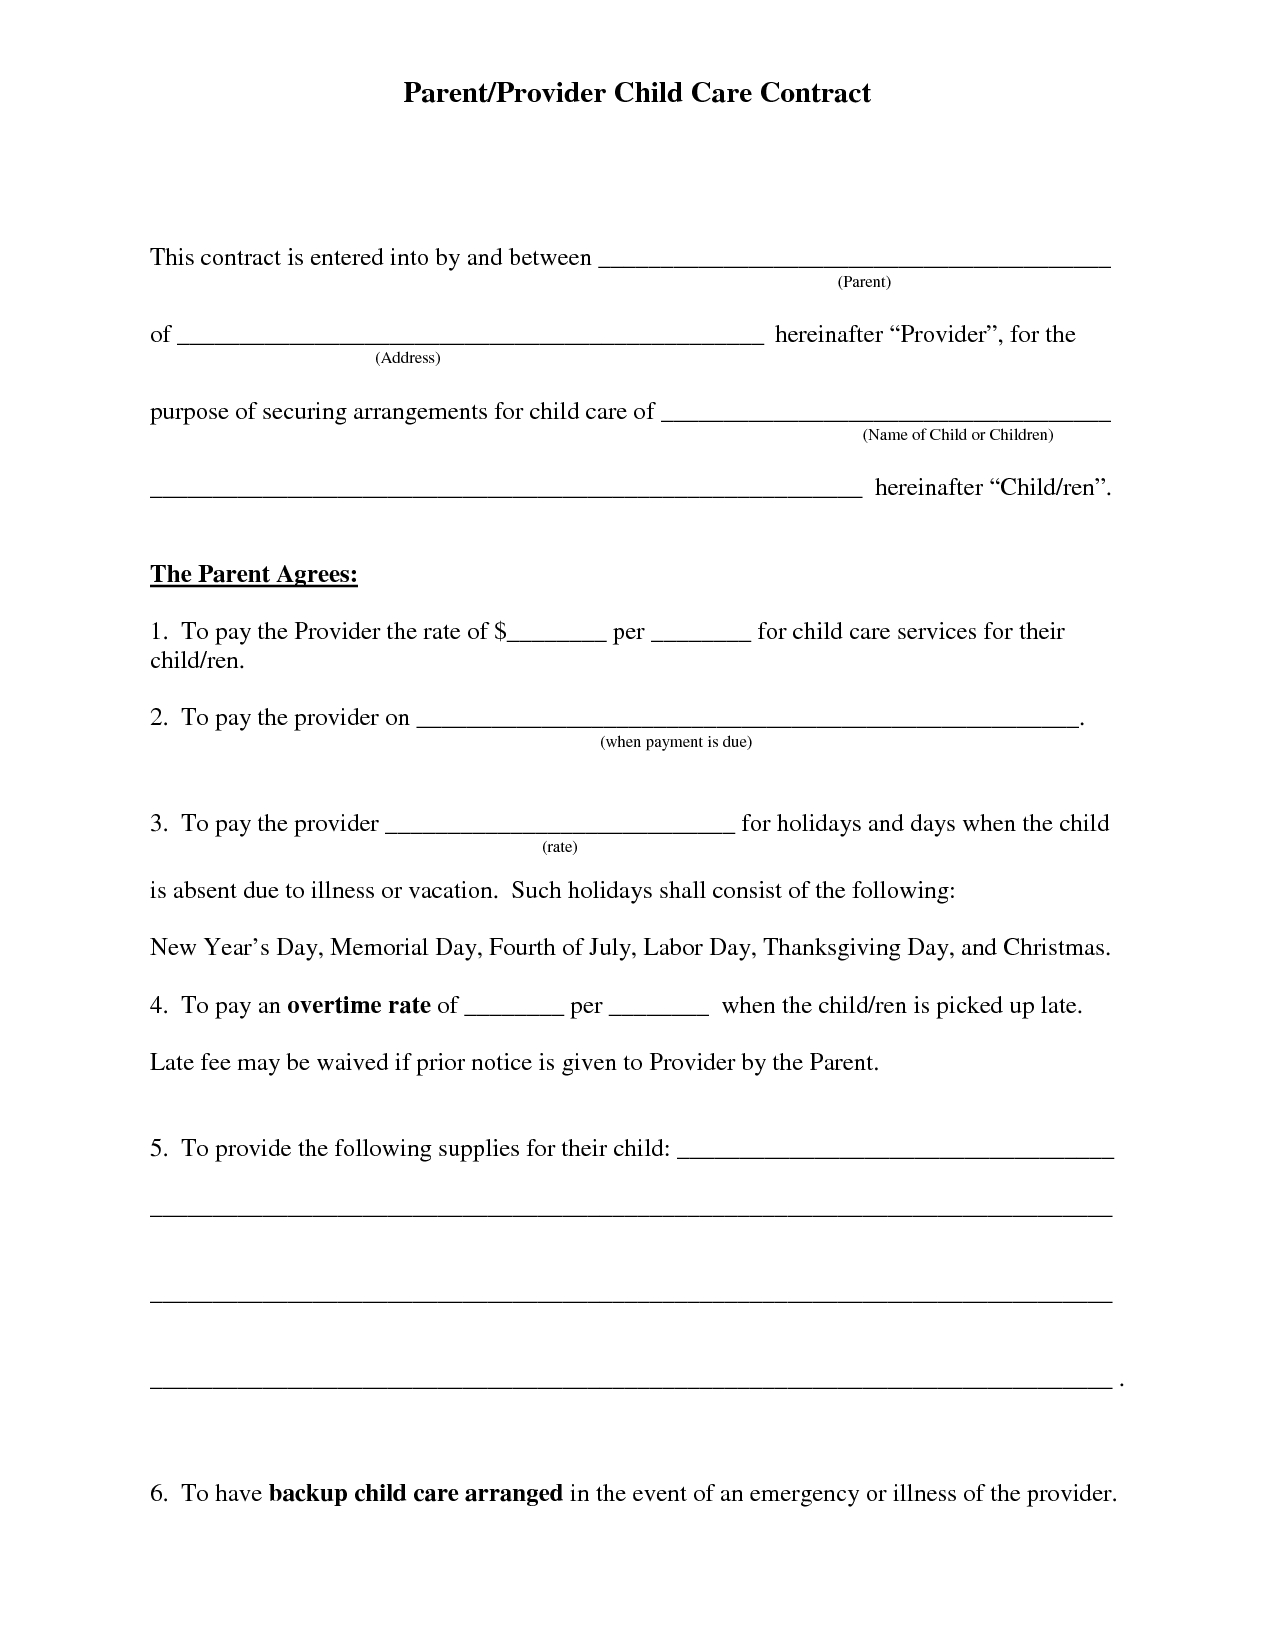 Free Daycare Contract Forms | Daycare Forms | Daycare Contract - Free Printable Contracts